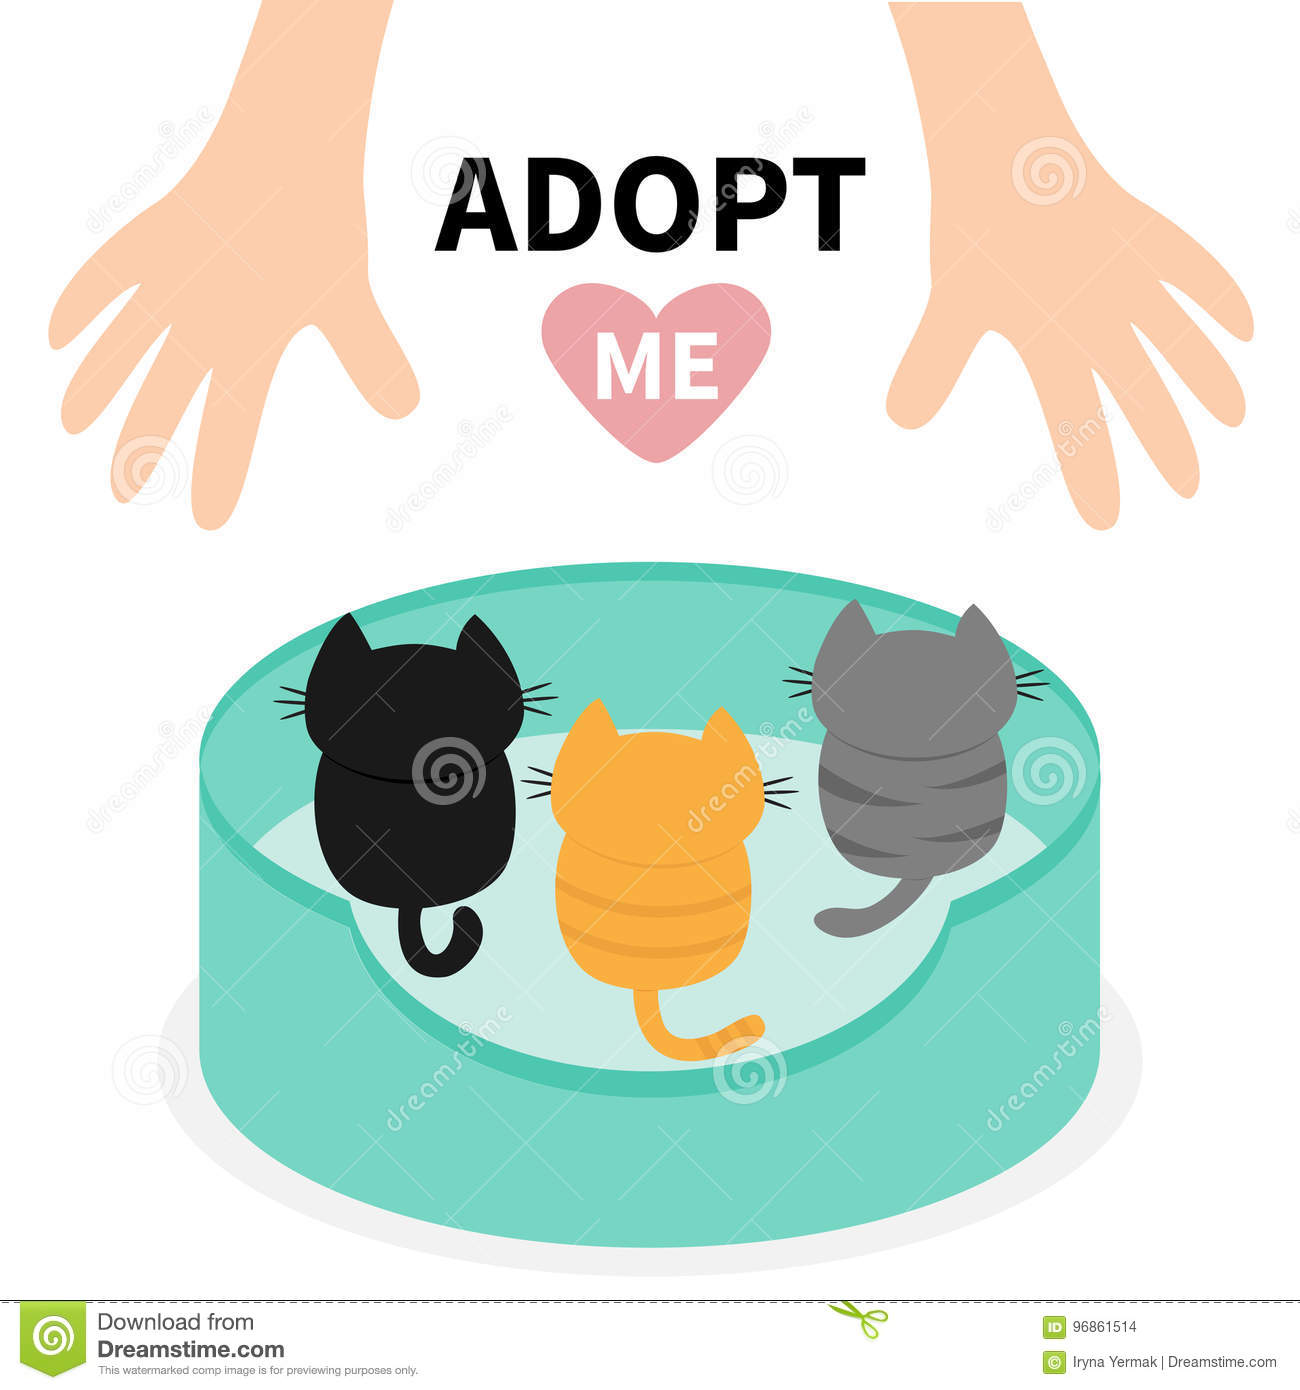 Adopt me. Kittens looking up to human hand. Cat bed. Animal hug. Cute cartoon funny character. Helping hands concept. Pink heart.